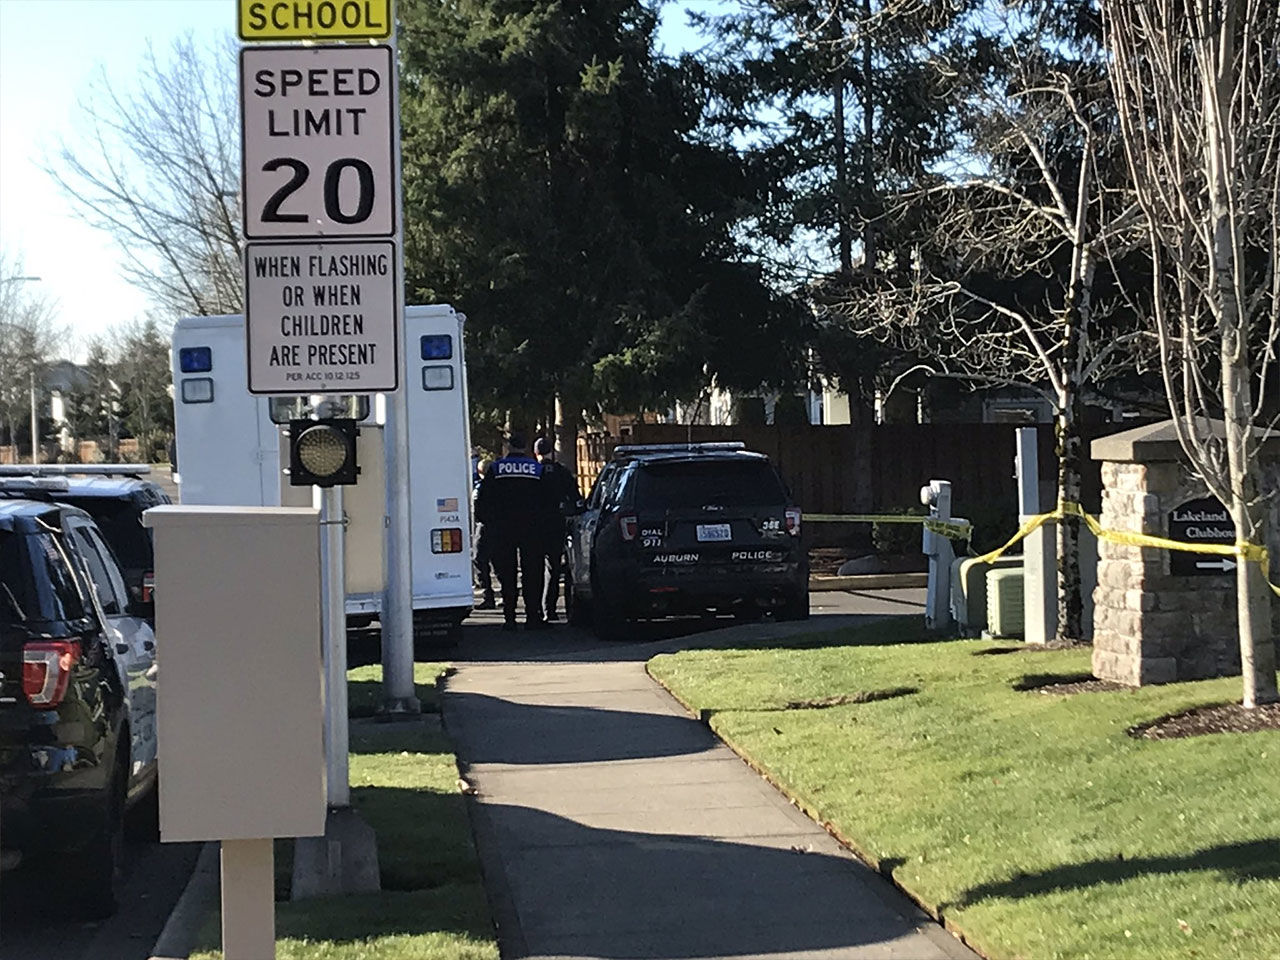 Police respond to the scene at the Lakeland Hills Community Center. (KOMO News photo)